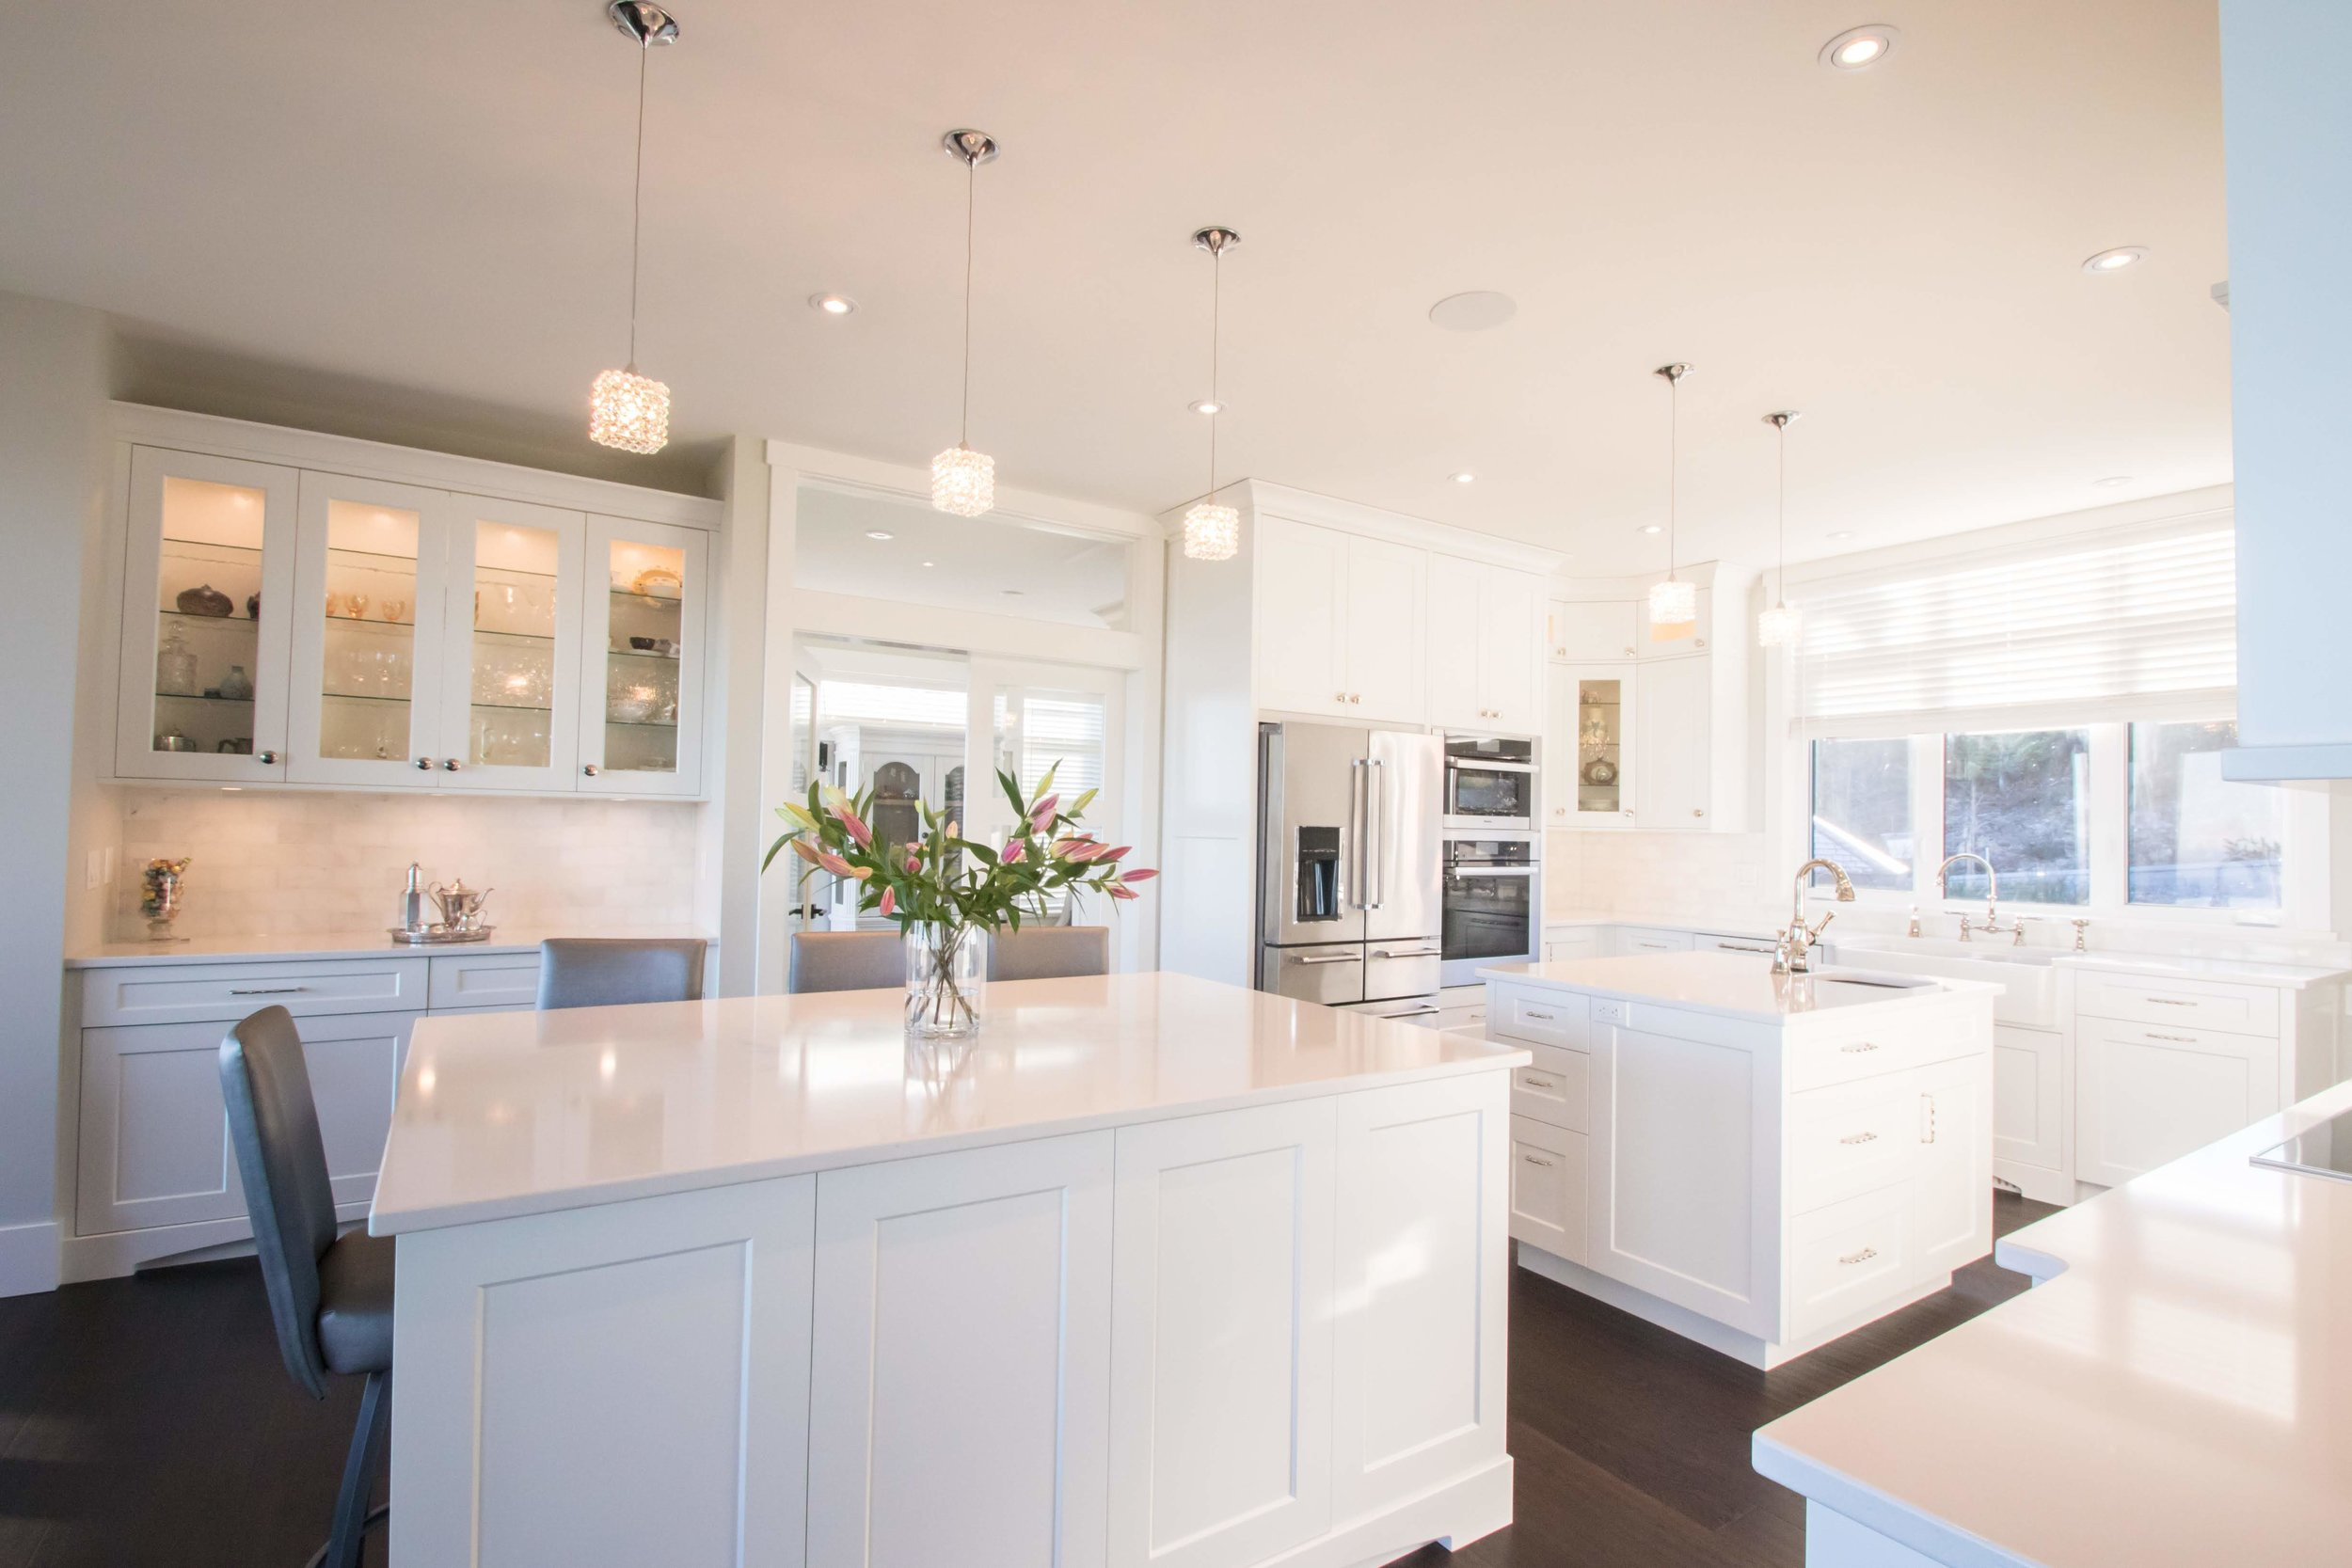 M. Easton - (Client)Project Date: August 2018, Project Price: more than $100,000Having just settled in to our new home, I am pleased to say that the Cowichan Woodwork team skillfully mastered the custom designs, production and installation of all the built-in cabinetry throughout the project. From our experience, Cowichan Woodwork is an honest company that seems to pride itself on the exceptional quality of their products and craftsmanship, their attention to detail and strong work ethic. The staff are friendly, professional, accommodating, and genuinely care about the satisfaction of their customers. Everyone involved in our project went over and above to ensure that we were absolutely happy with their work and made any necessary adjustments to perfection! Our project was very challenging with various spaces requiring built-in cabinetry: kitchen and pantry, living room/dinning area, a guest bedroom, master ensuite and walk in closet two guest bathrooms, laundry area, boot room and dog/storage room. We also had a rental suite which included a kitchen, bathroom and bedroom with custom cabinetry . Coleen Walters, our design consultant, being excellent at her craft successfully managed this very large project. She spent many involved hours discussing ideas and drafting up plans that reflected her meticulous attention to the details of design, measurement and installation requirements. Coleen worked very hard at making any modifications necessary in order to produce designs that not only matched our functional needs, but also that were aesthetically pleasing and cohesive. We really appreciated Coleen's flexibility and willingness to work collaboratively with our interior designer, Tina Moizer, on the living room fireplace/shelving display area and to integrate Tina's suggestions in other areas where appropriate. We absolutely love all the functional and flowing spaces that Coleen helped to create, especially our gorgeous kitchen. We would highly recommend Coleen and the